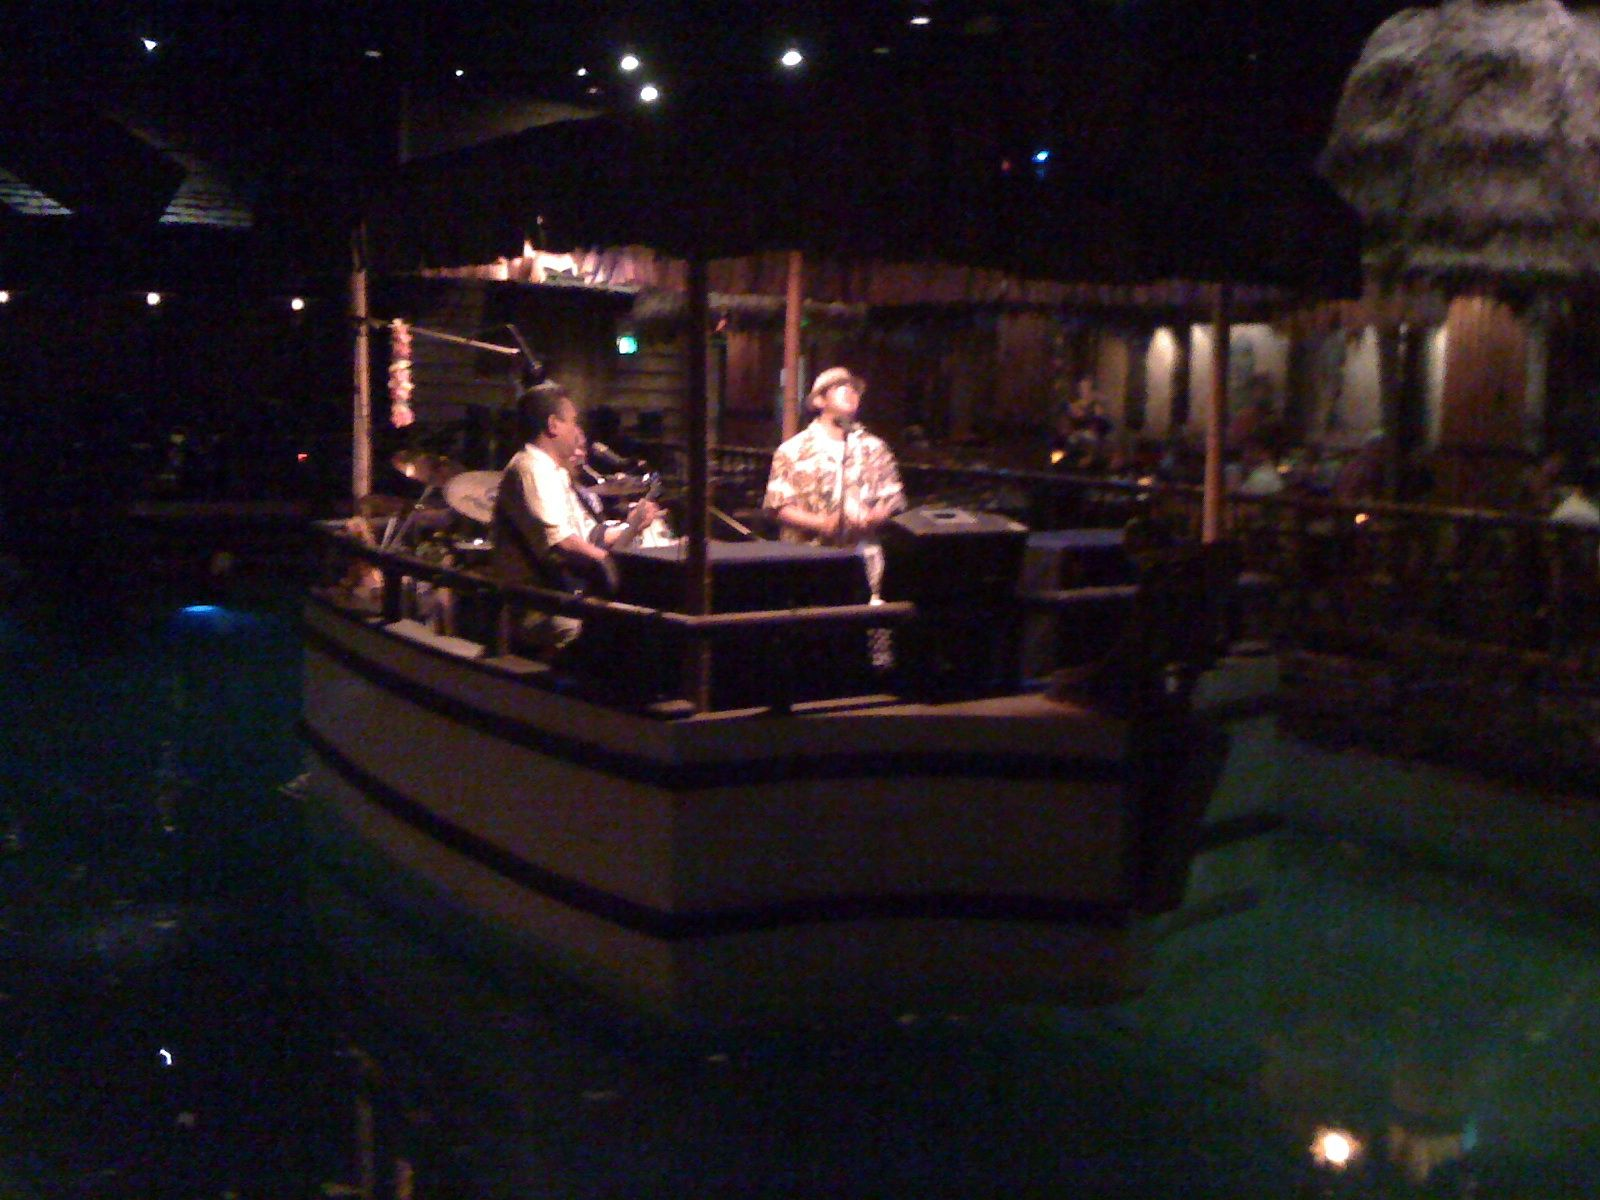 From the Tonga Room in San Francisco Totally awesome